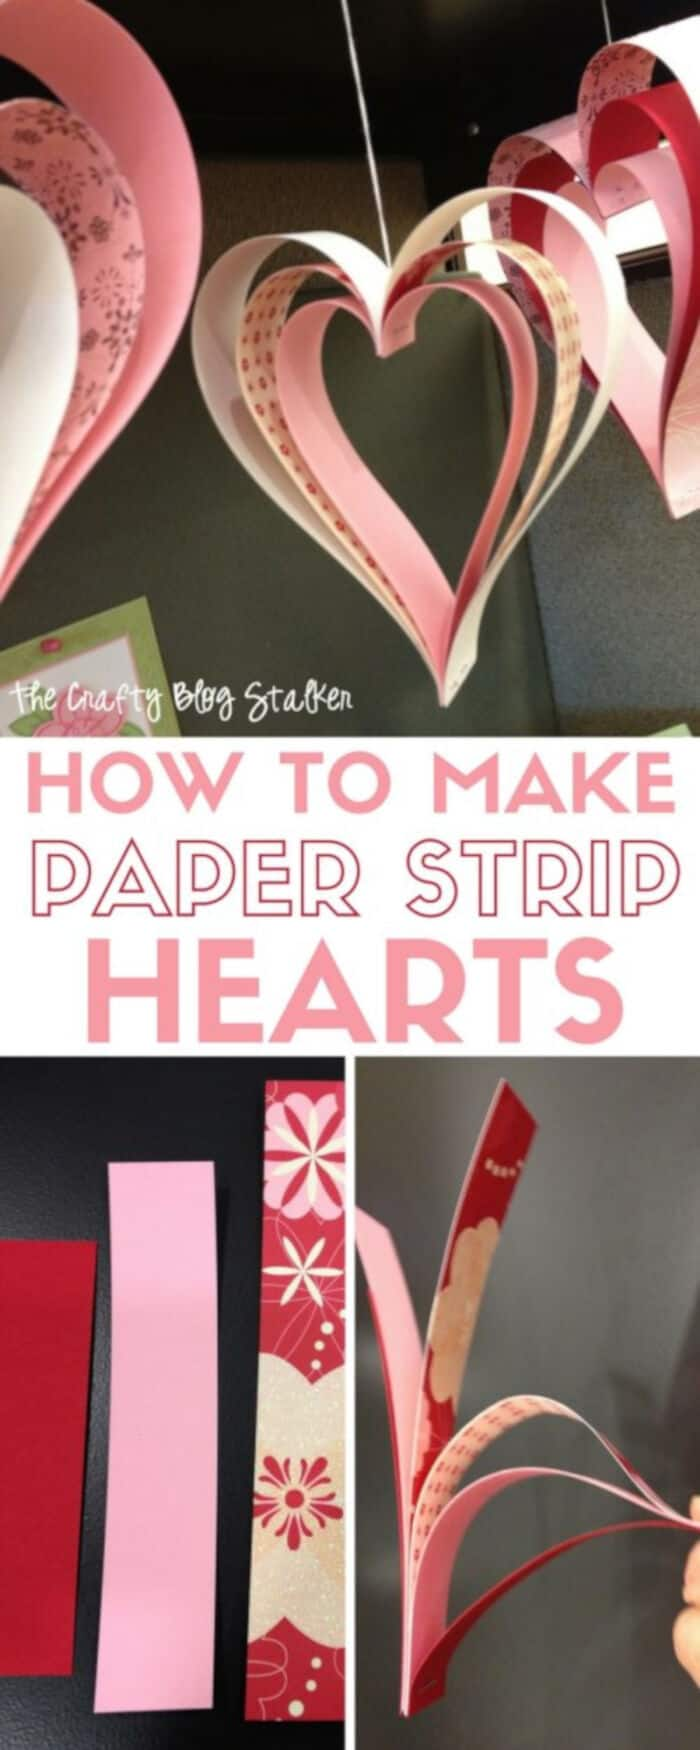 Paper Strip Hearts by The Crafty Blog Stalker